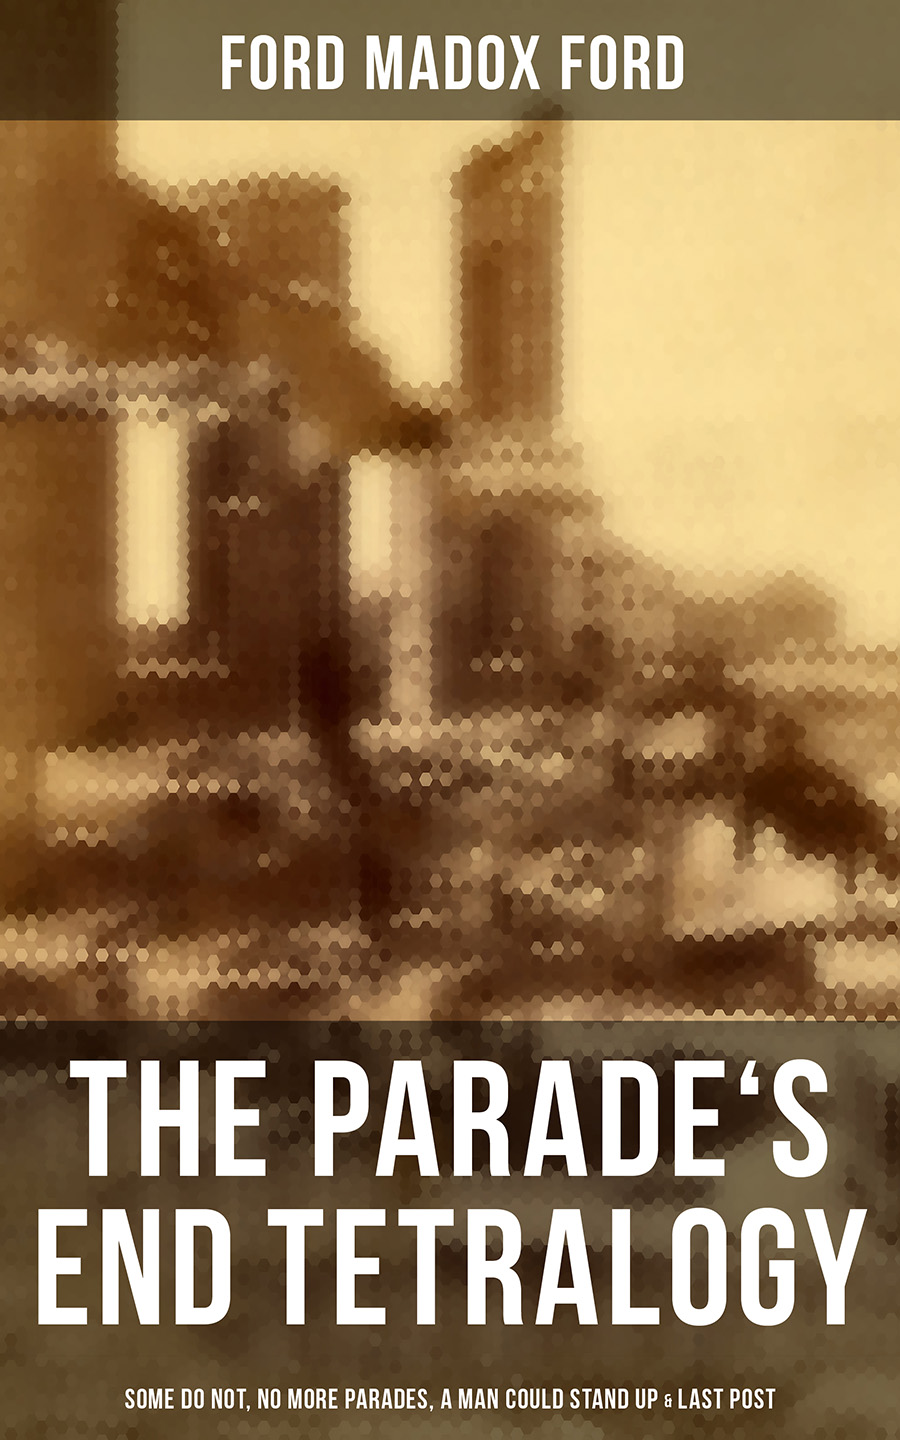 Ford Madox Ford The Parade's End Tetralogy: Some Do Not, No More Parades, A Man Could Stand Up & Last Post ford madox ford koniec defilady